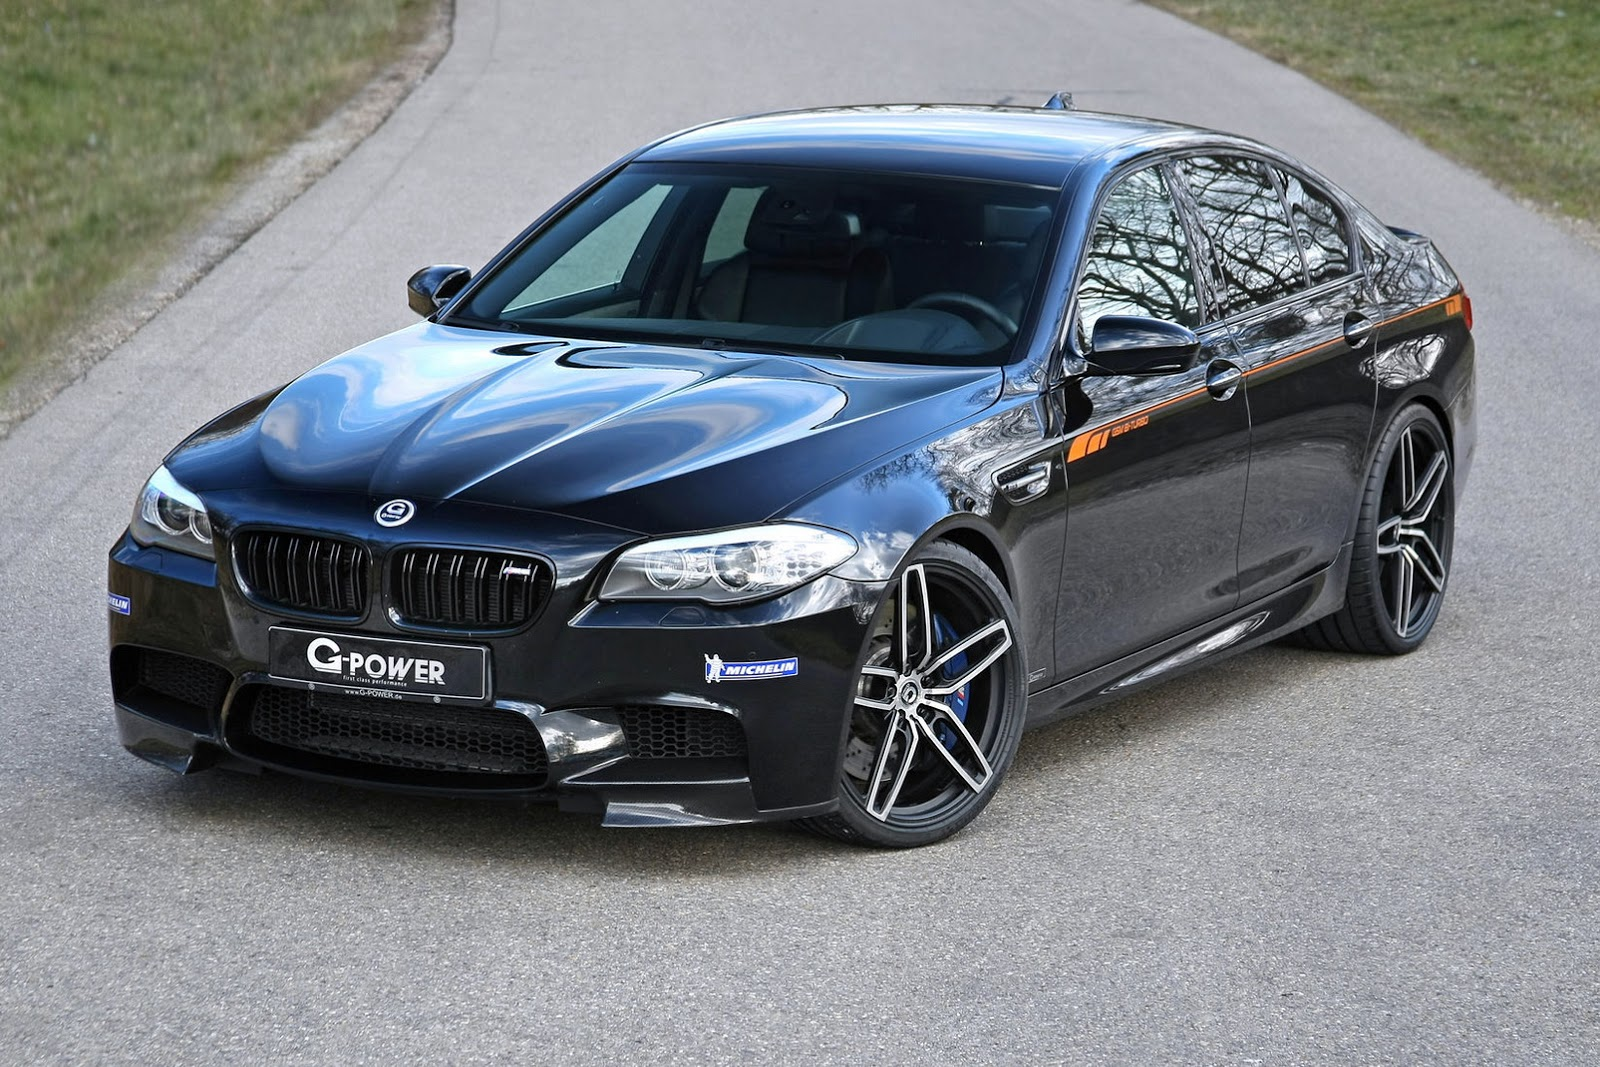 Bmw M5 By G Power Bmw Car Tuning